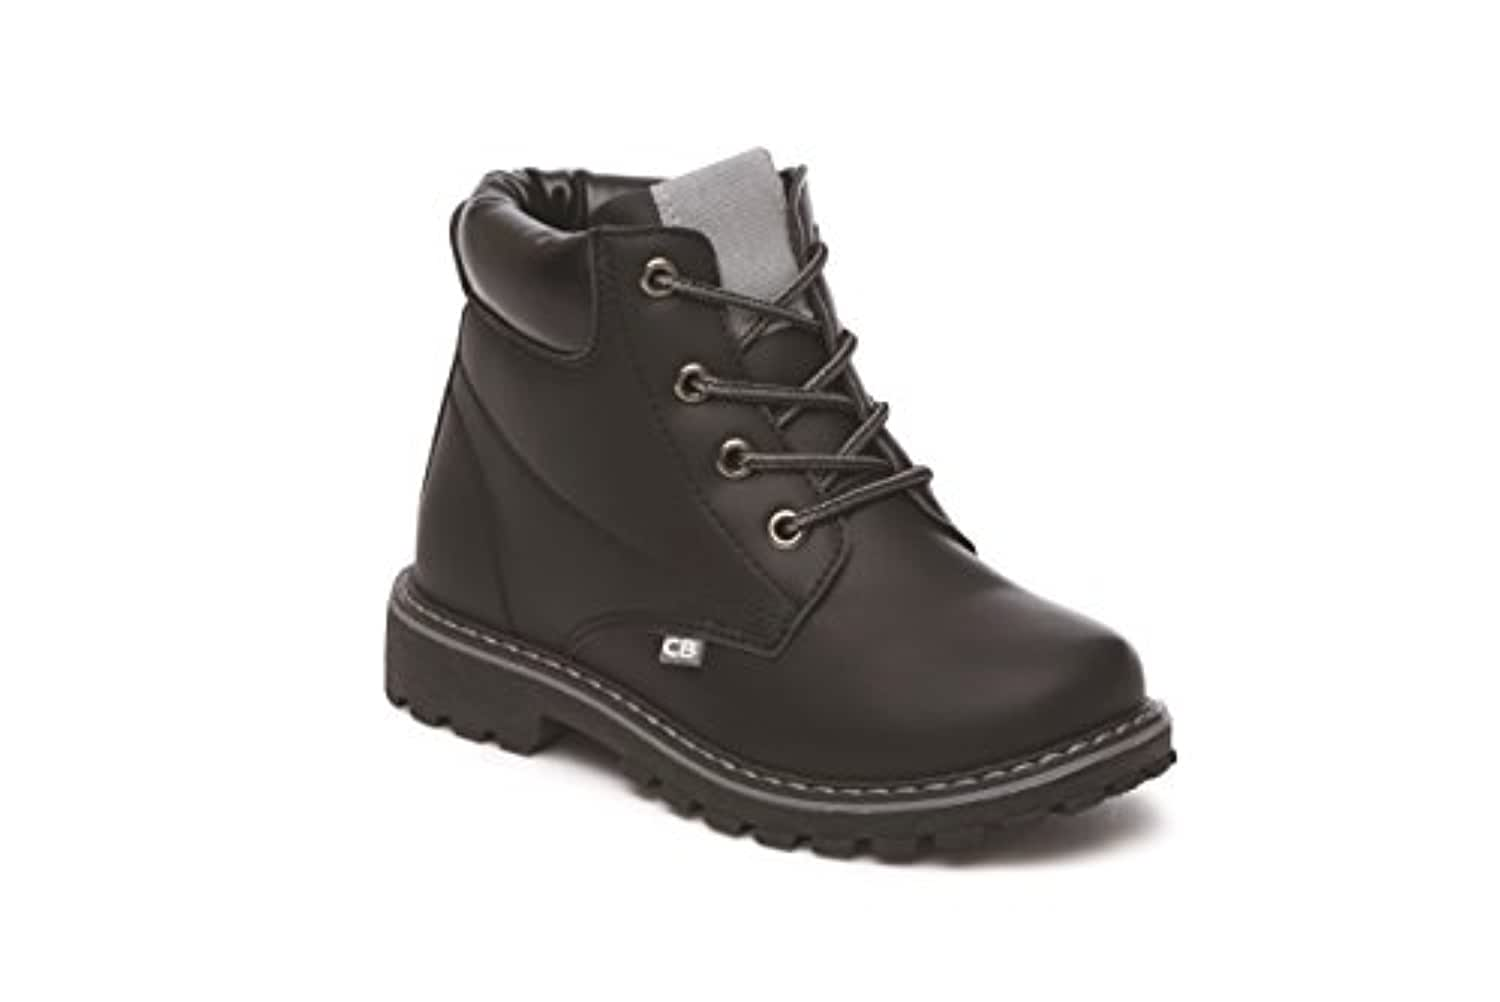 Boys Lace Up Boots School Formal Winter Trendy (UK 8 Infant, Black)